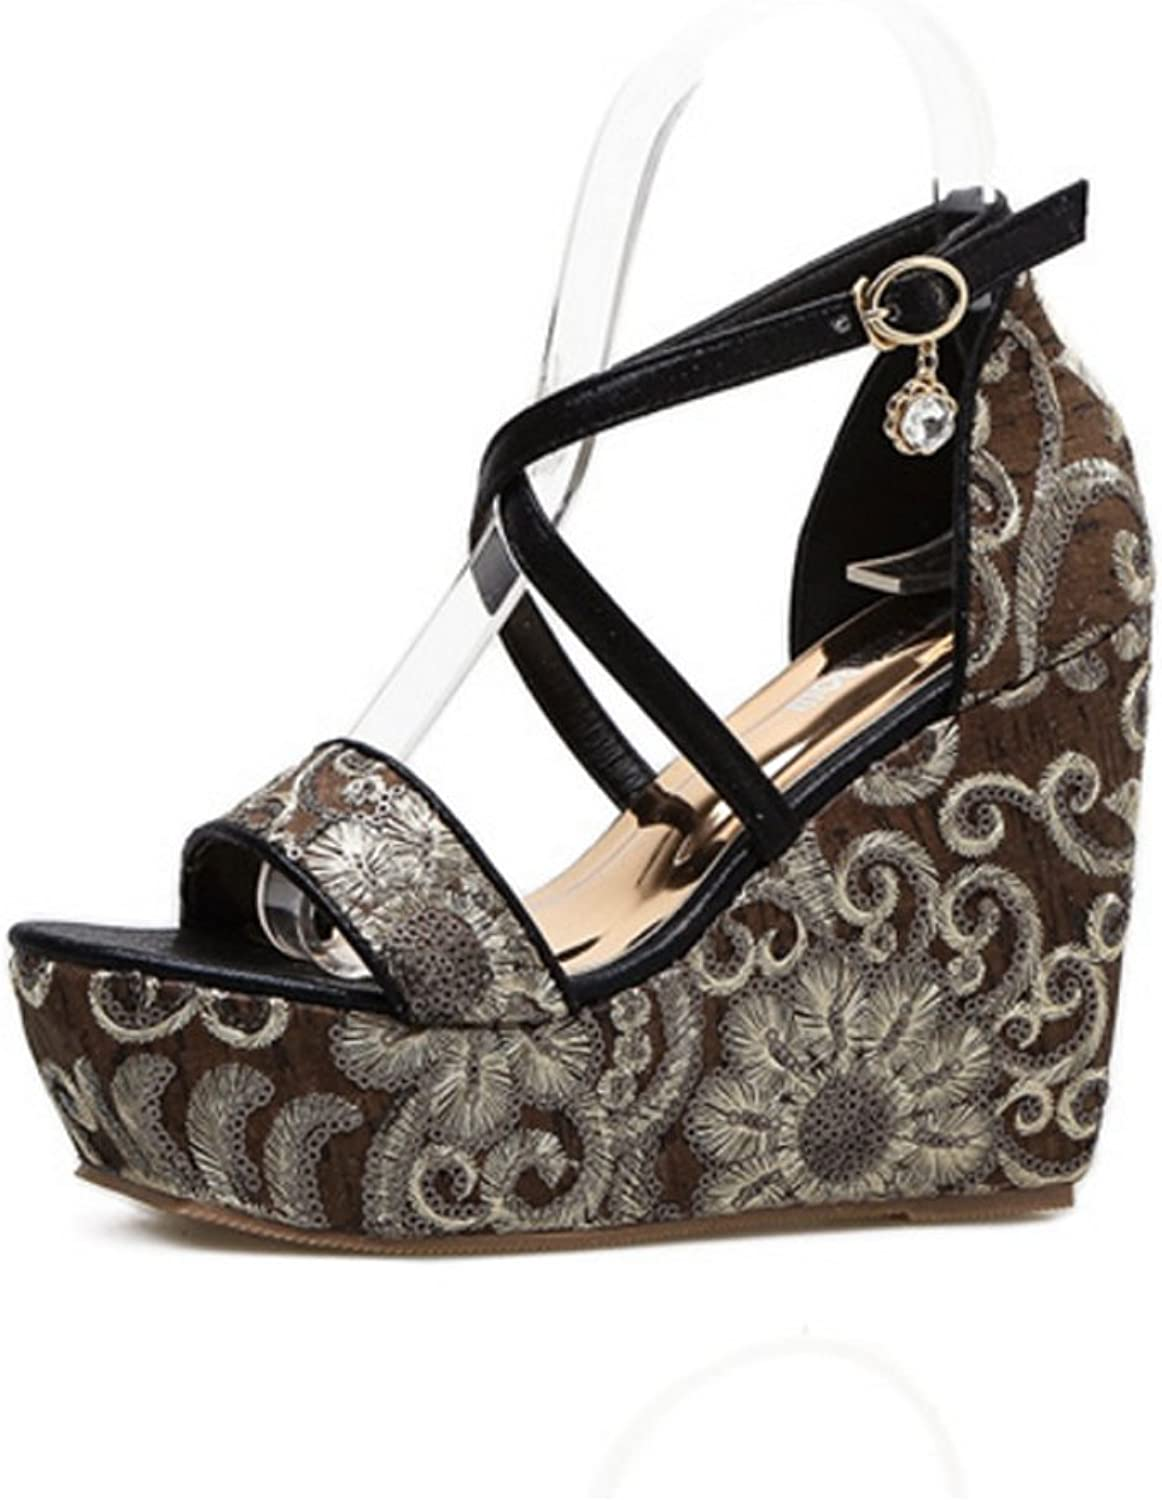 Niceful Women Open Toe Paltform Wedge Sandals Summer Crisscross Ankle Strappy Embroidered High-Heeled Sandals